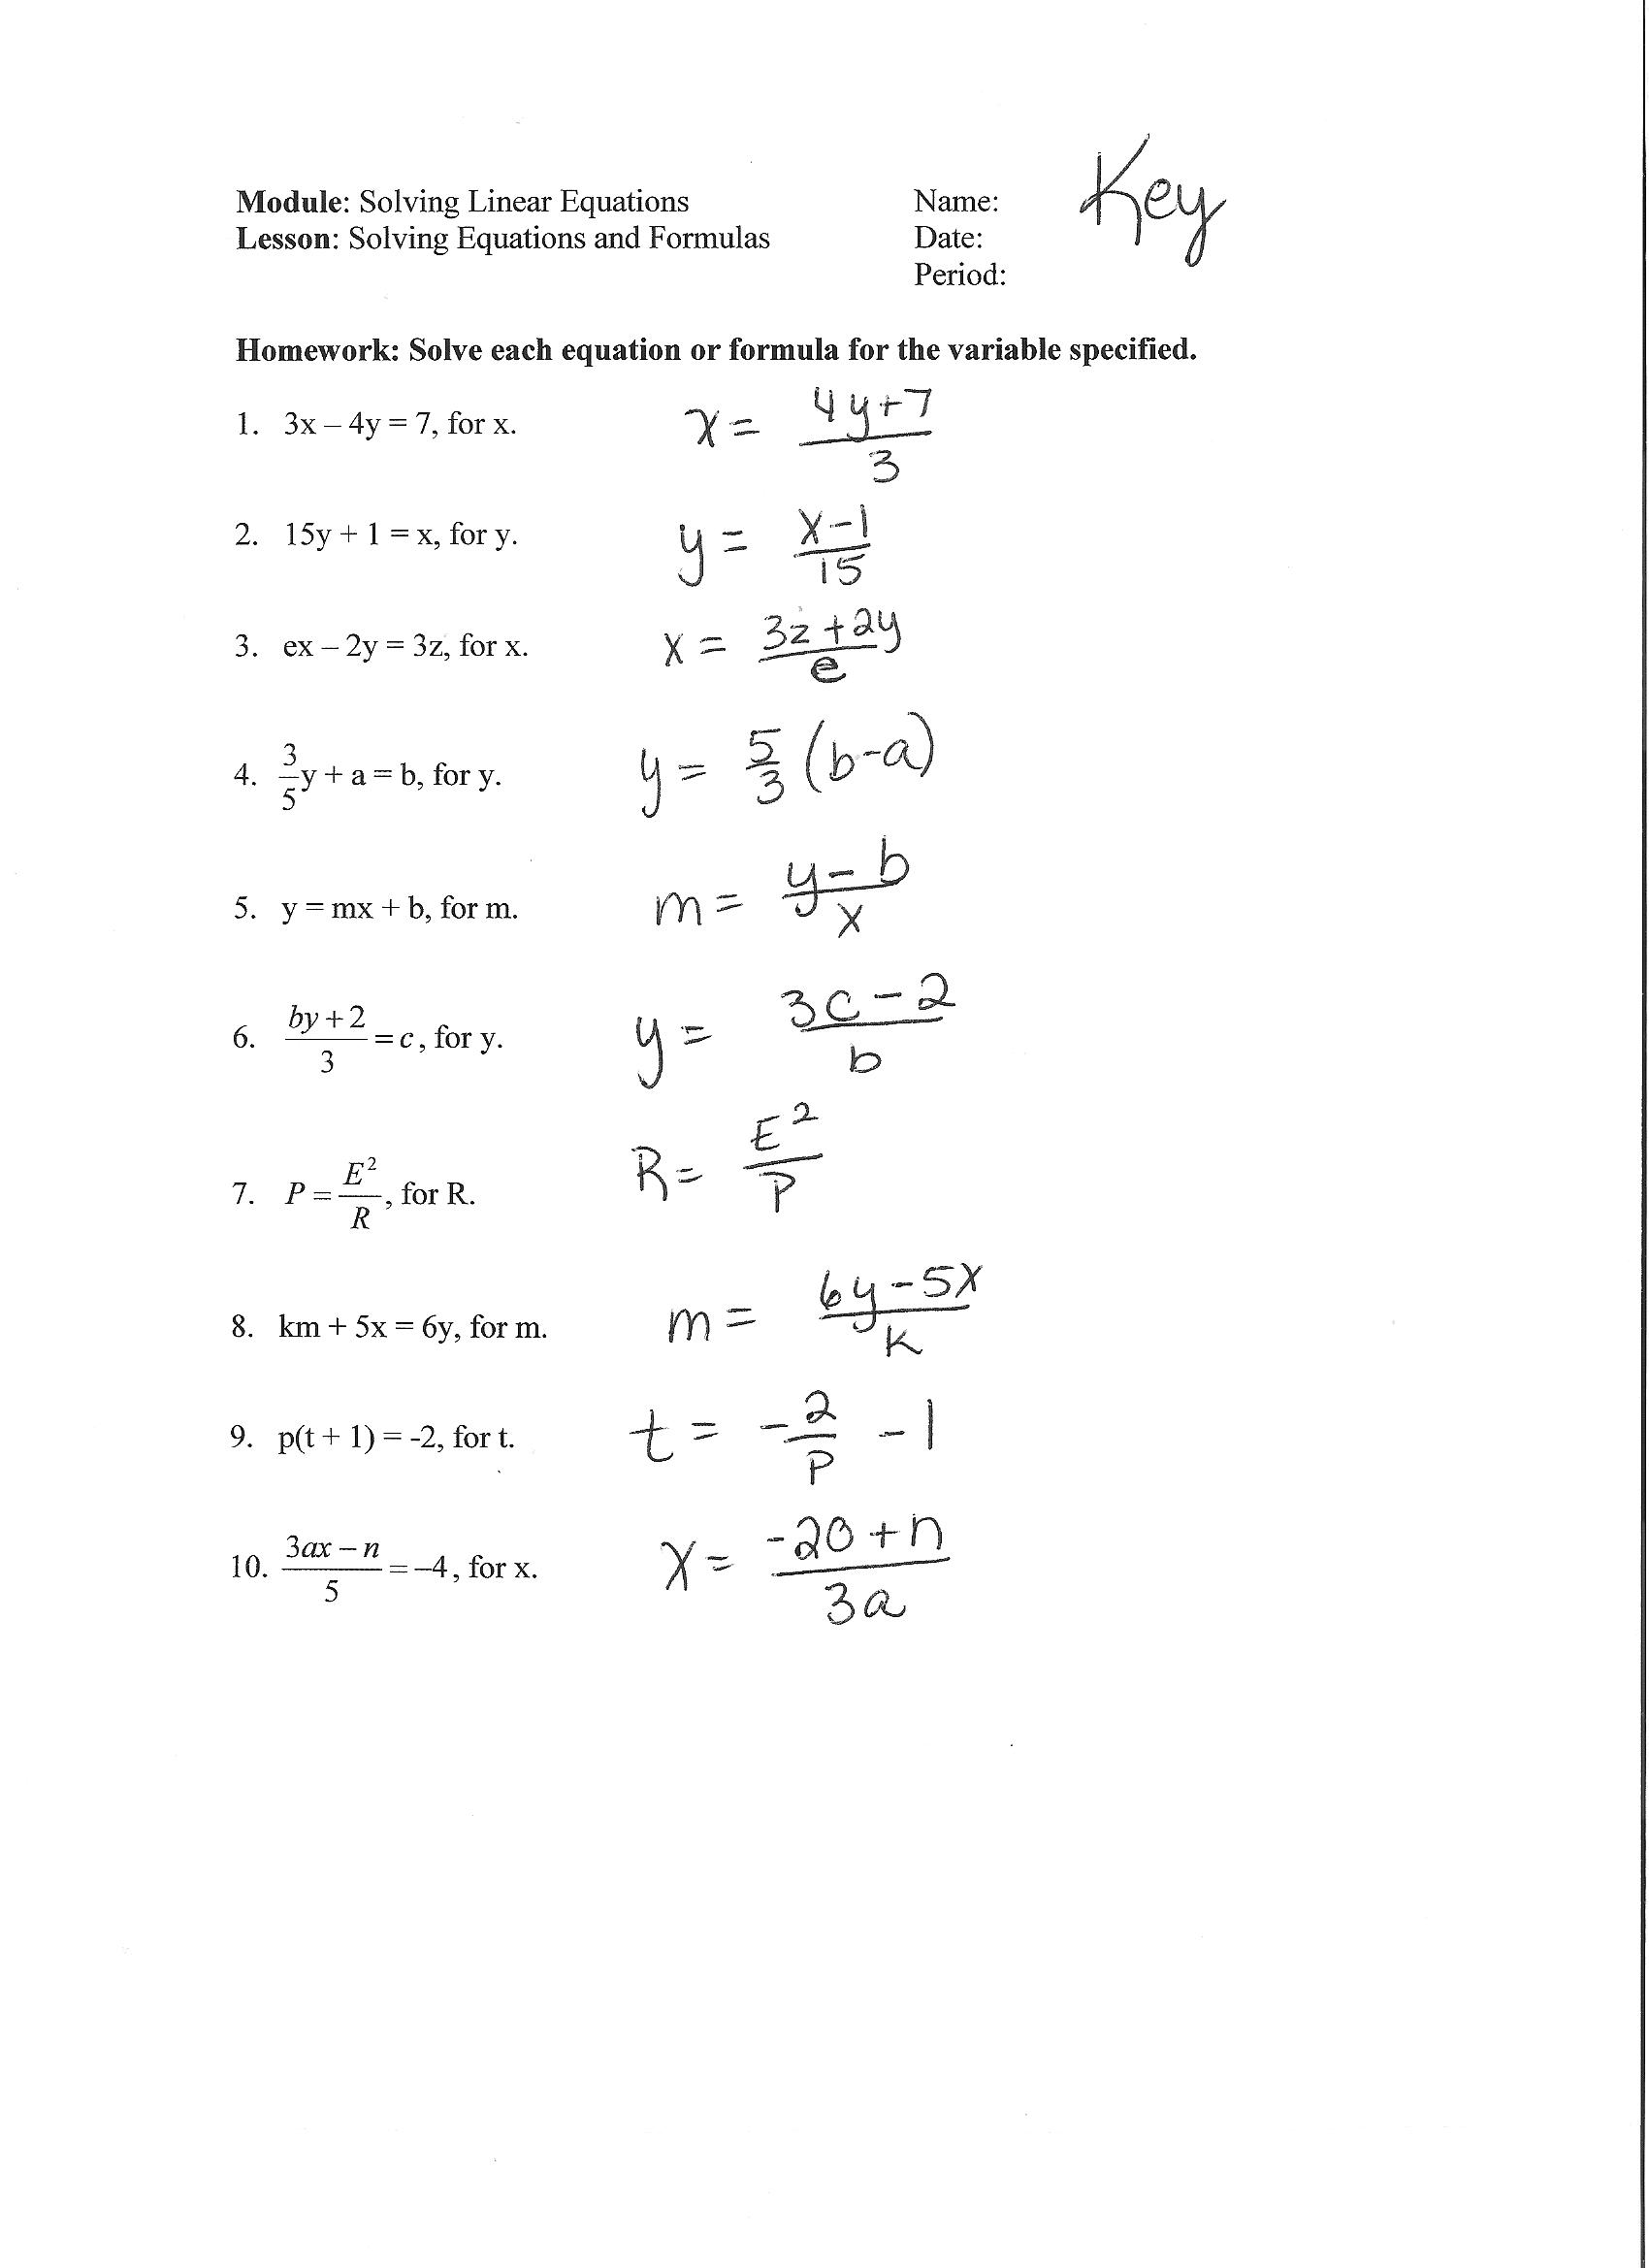 Printables Algebra Solving Equations Worksheet solving equations printable worksheets imperialdesignstudio 2338 167 kb jpeg with answers